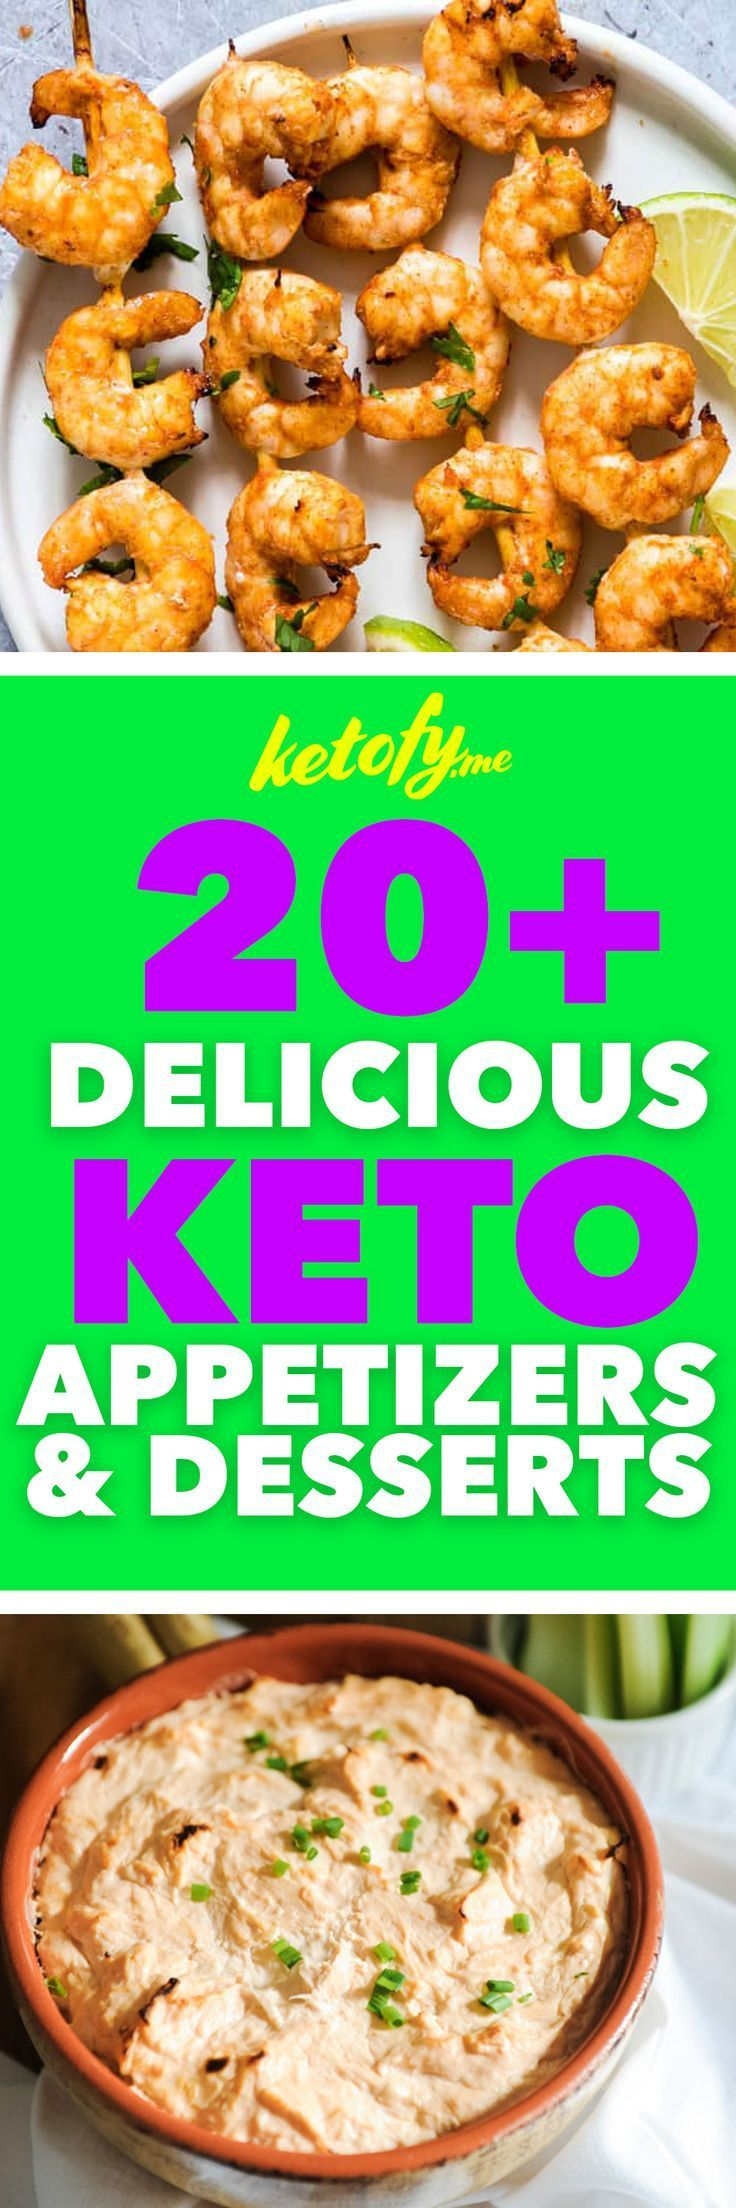 20+ Keto & Low Carb Appetizers & Desserts for the Super